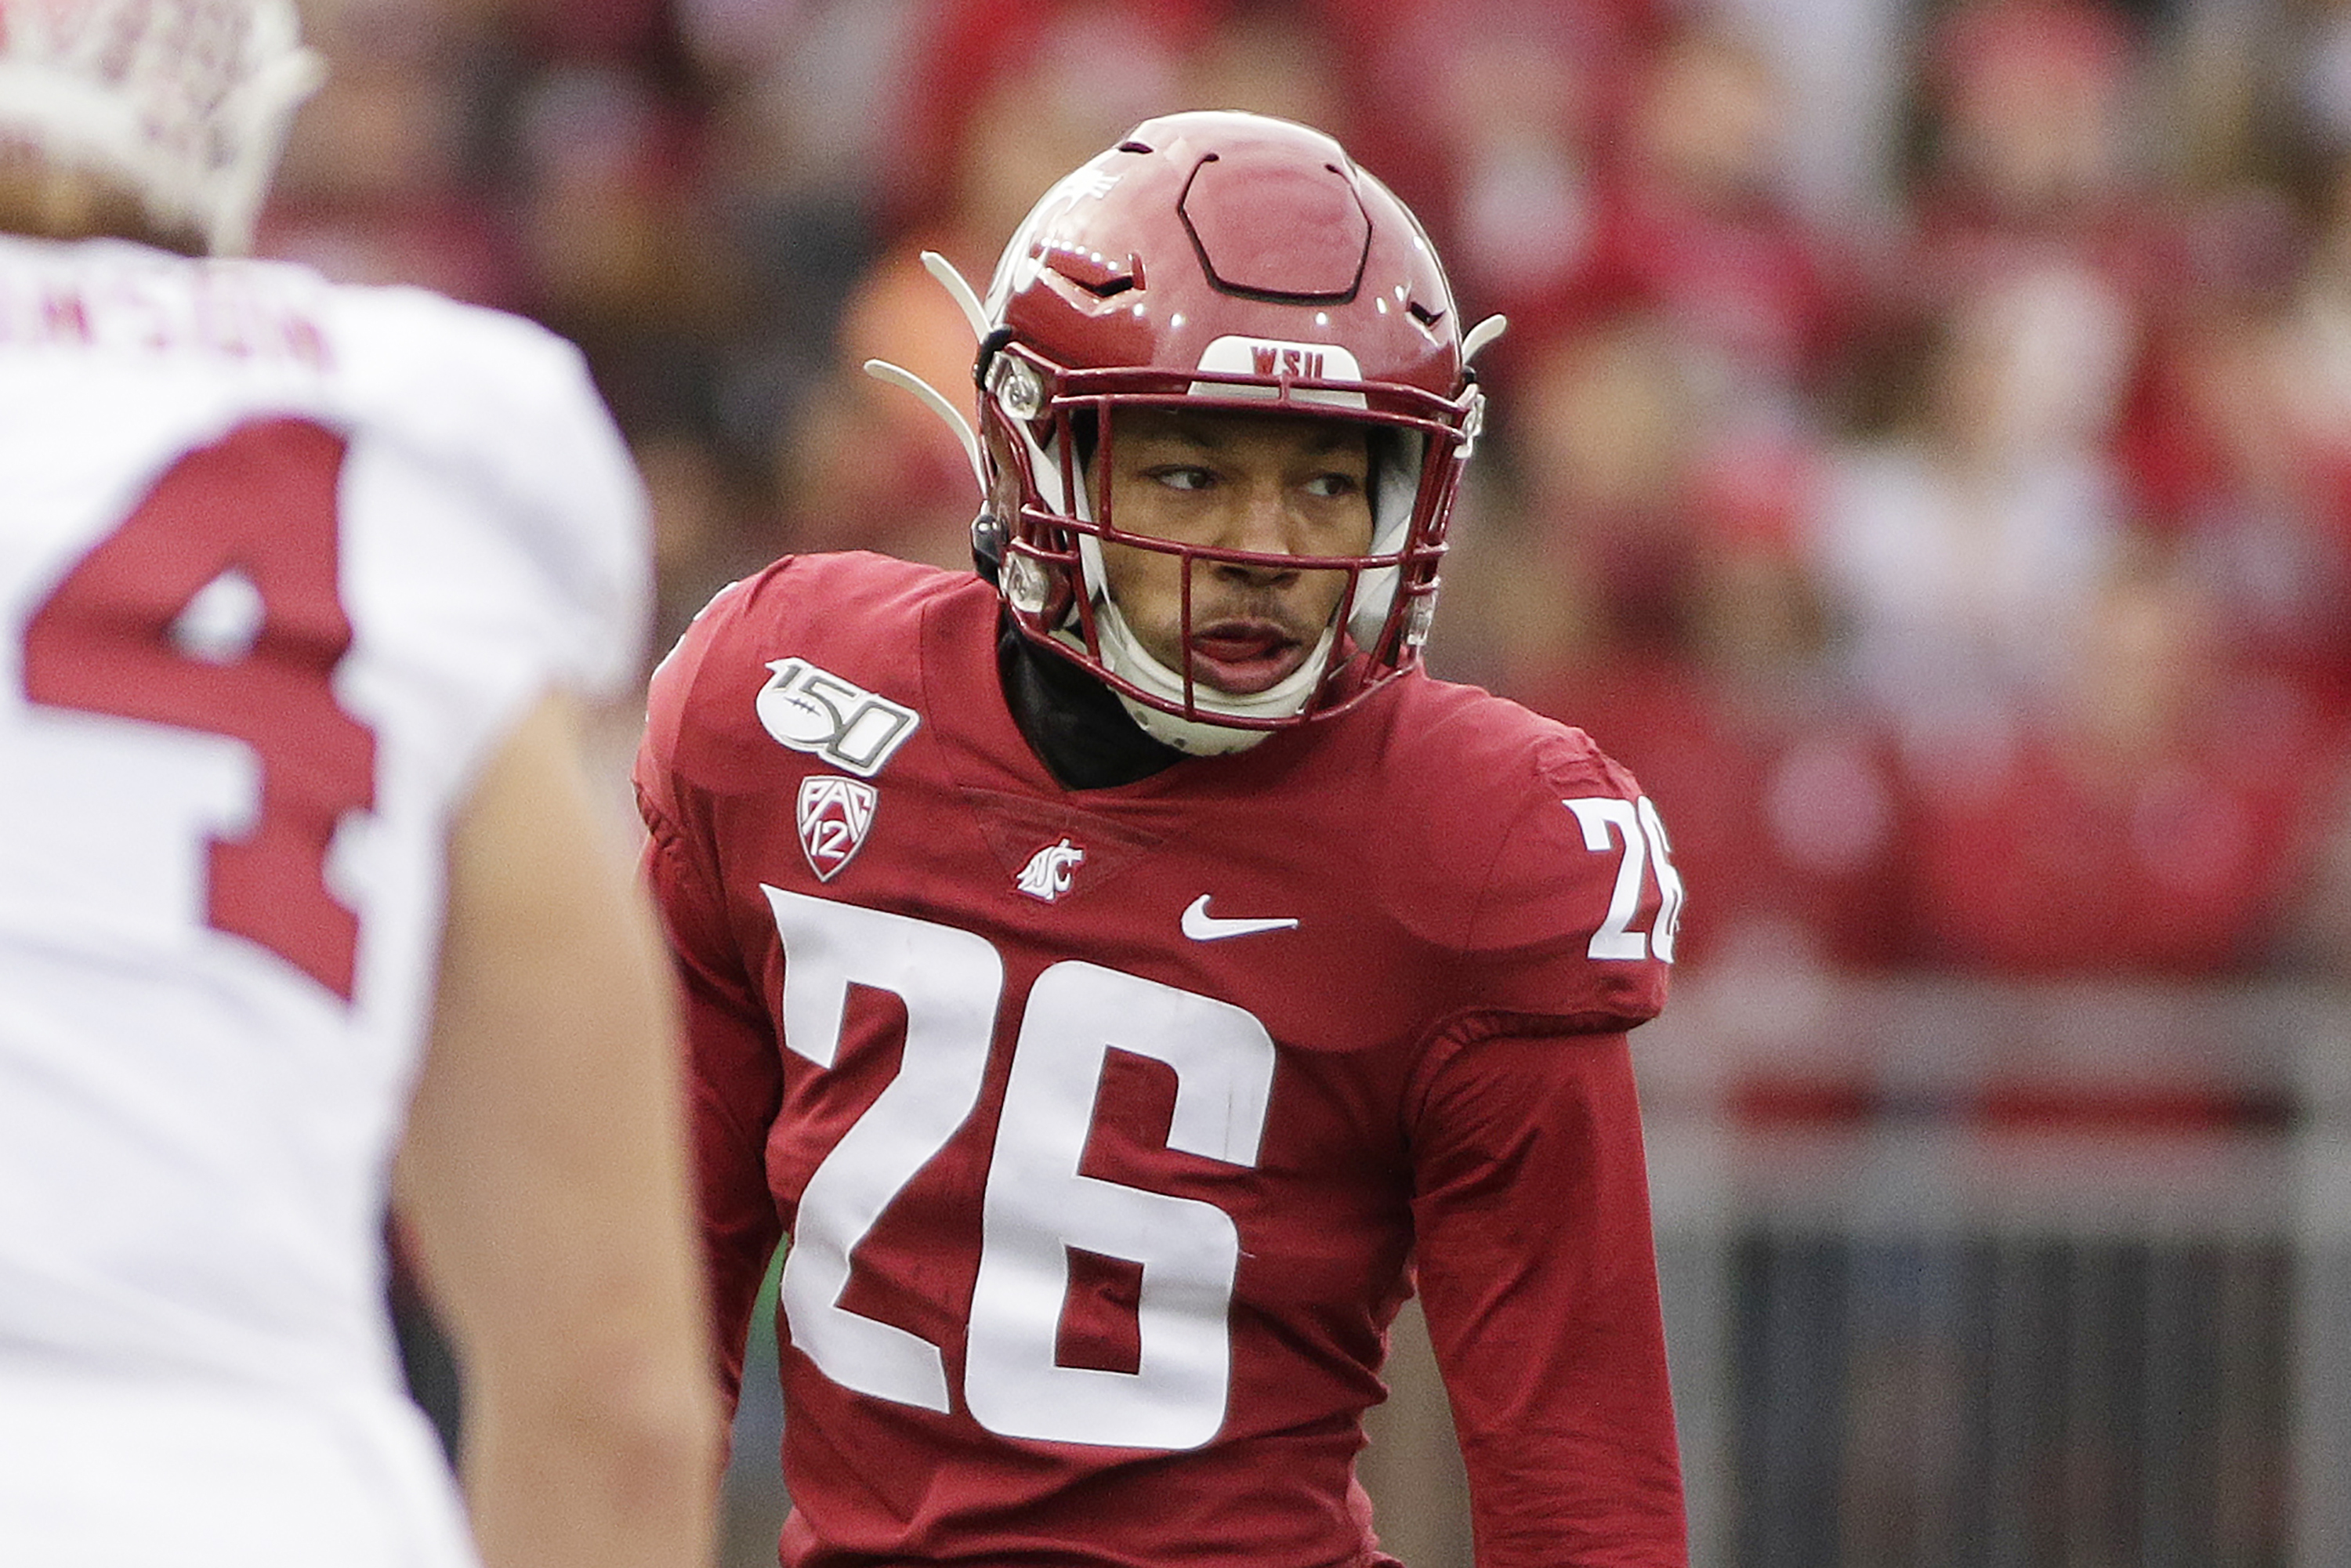 Coroner: WSU safety Bryce Beekman died of acute intoxication